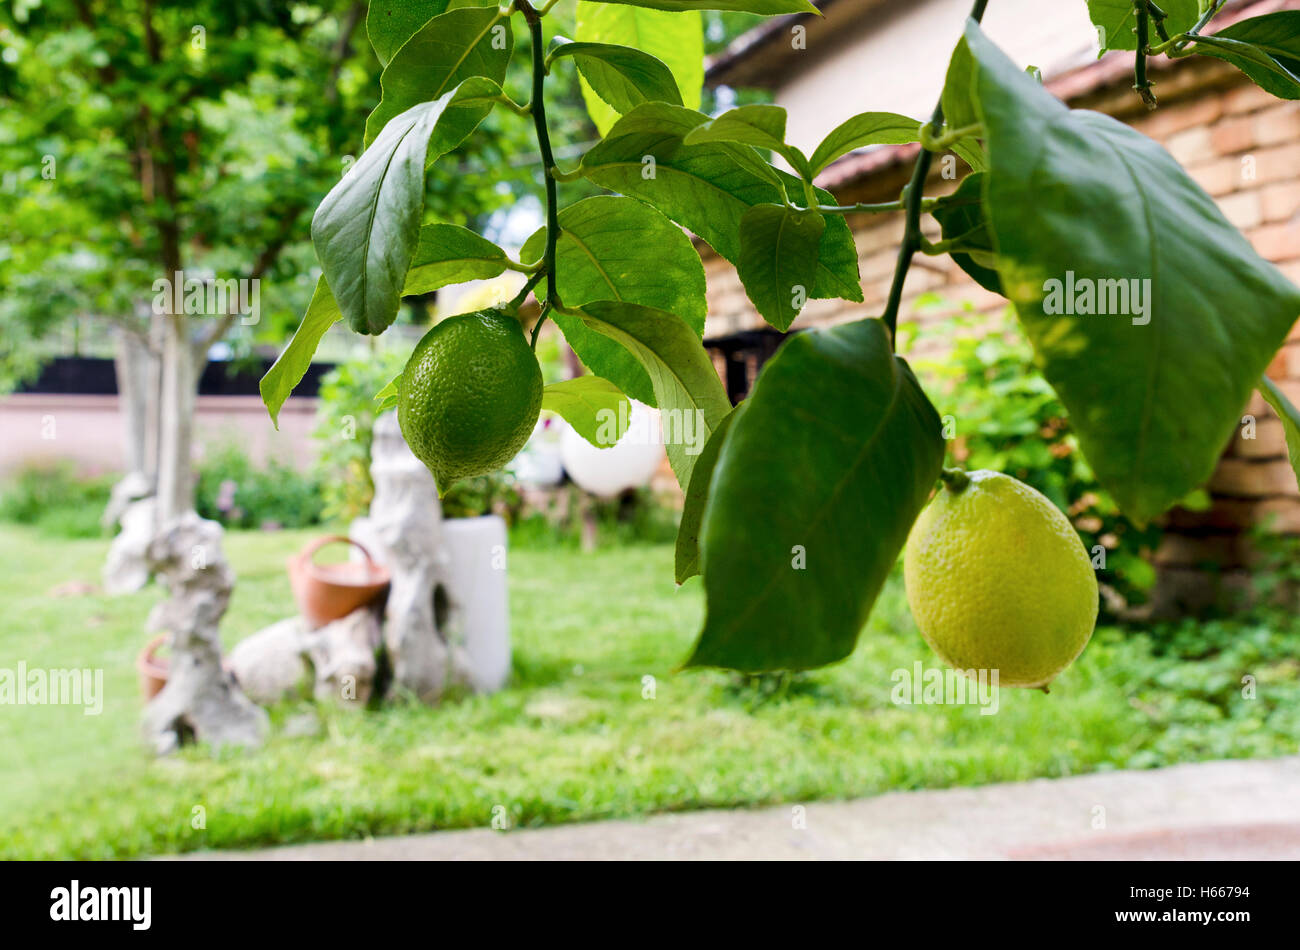 Backyard and two lemons in a pot - Stock Image